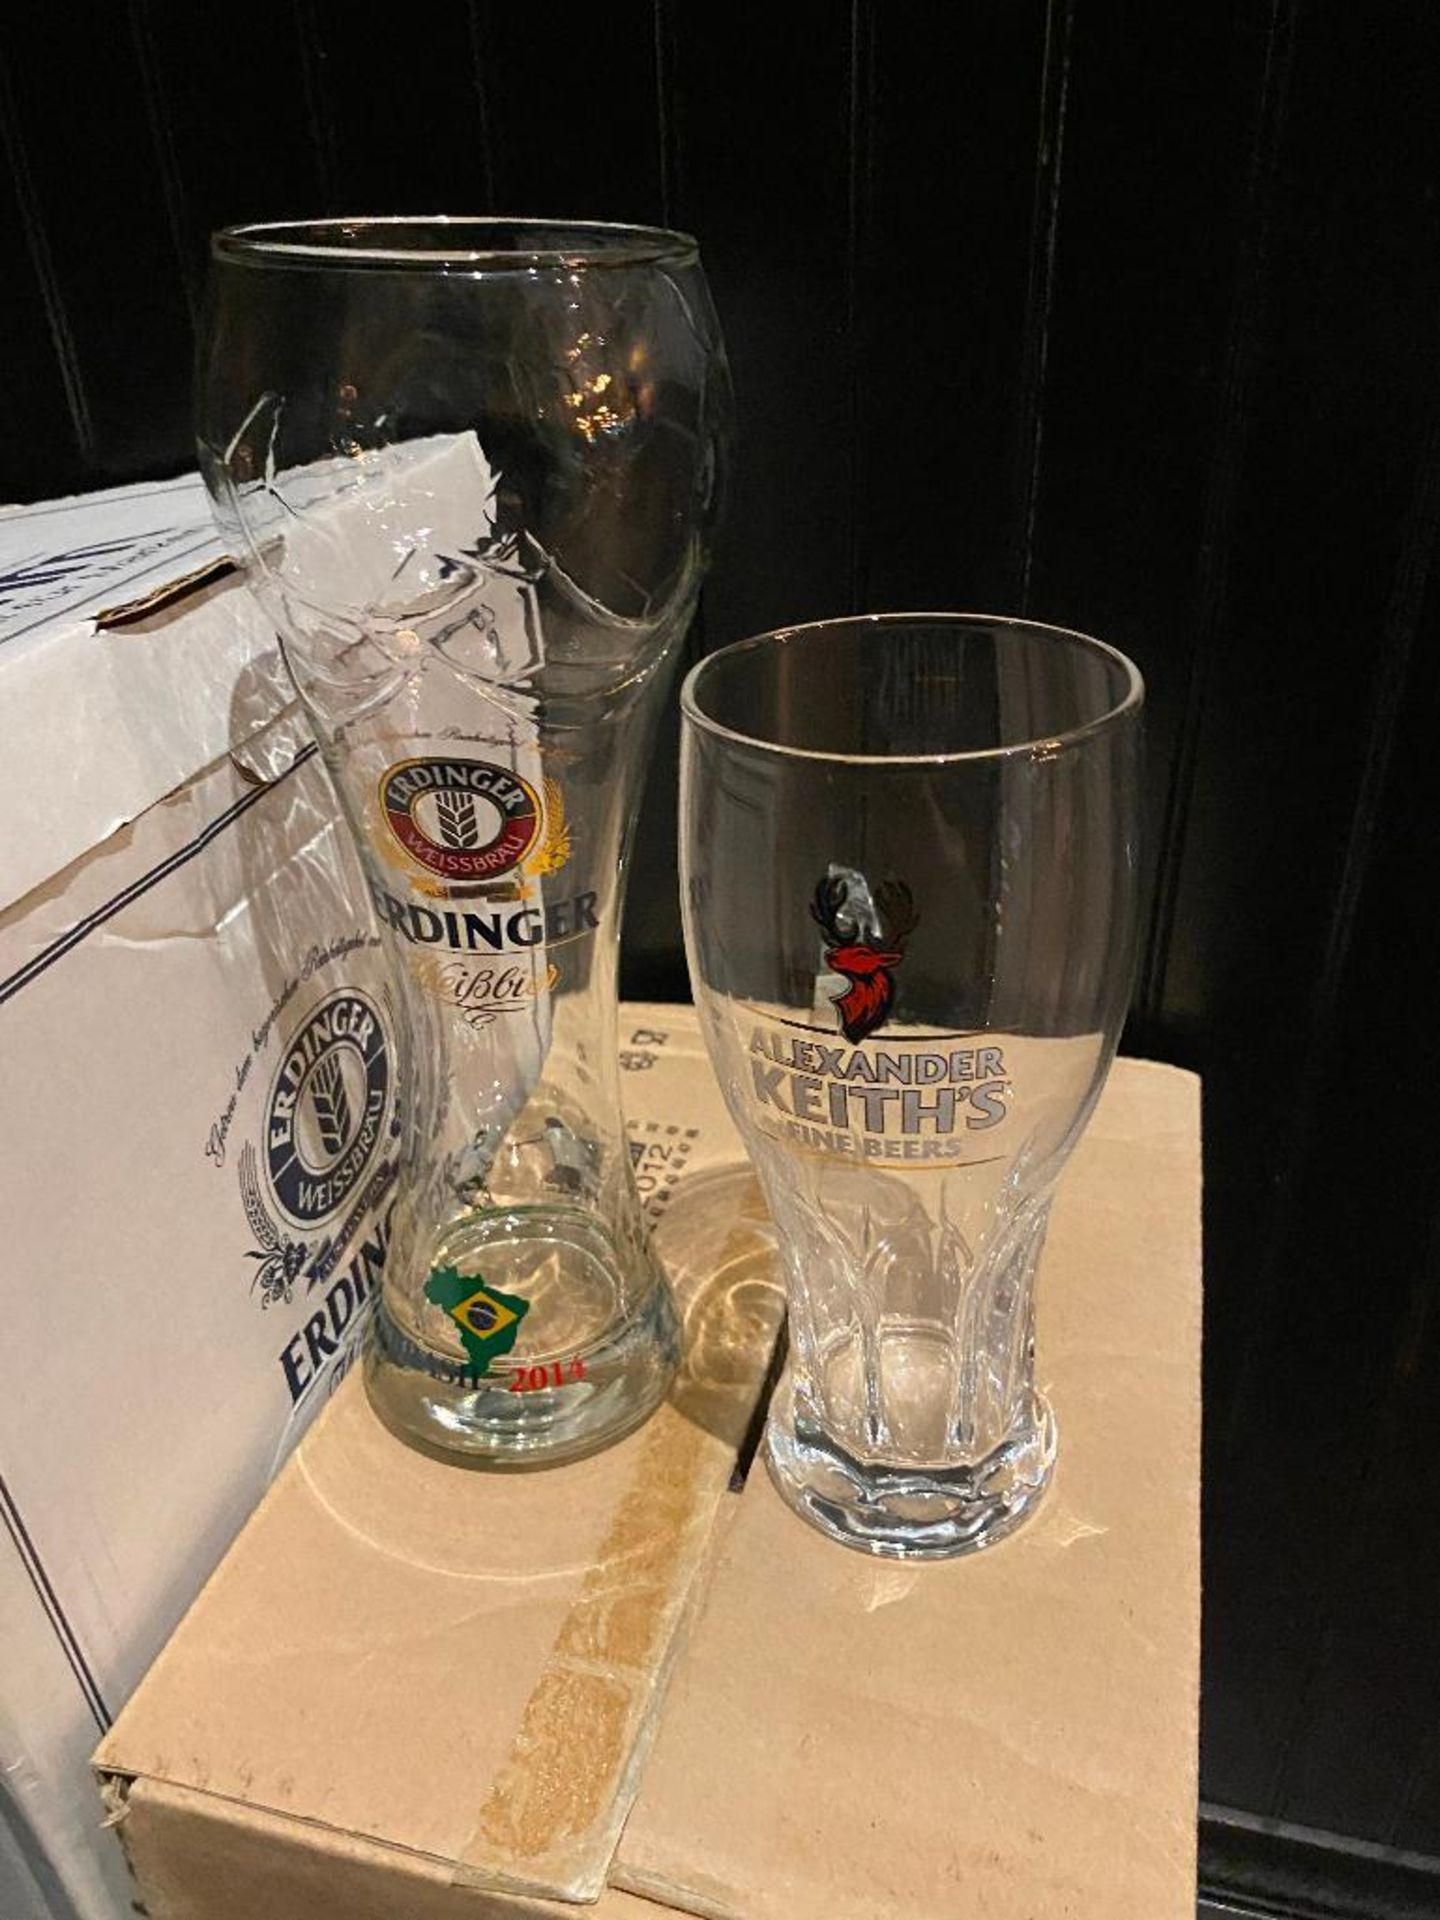 LOT OF (6) BOXES OF ASSORTED BRANDED GLASSES - Image 2 of 2